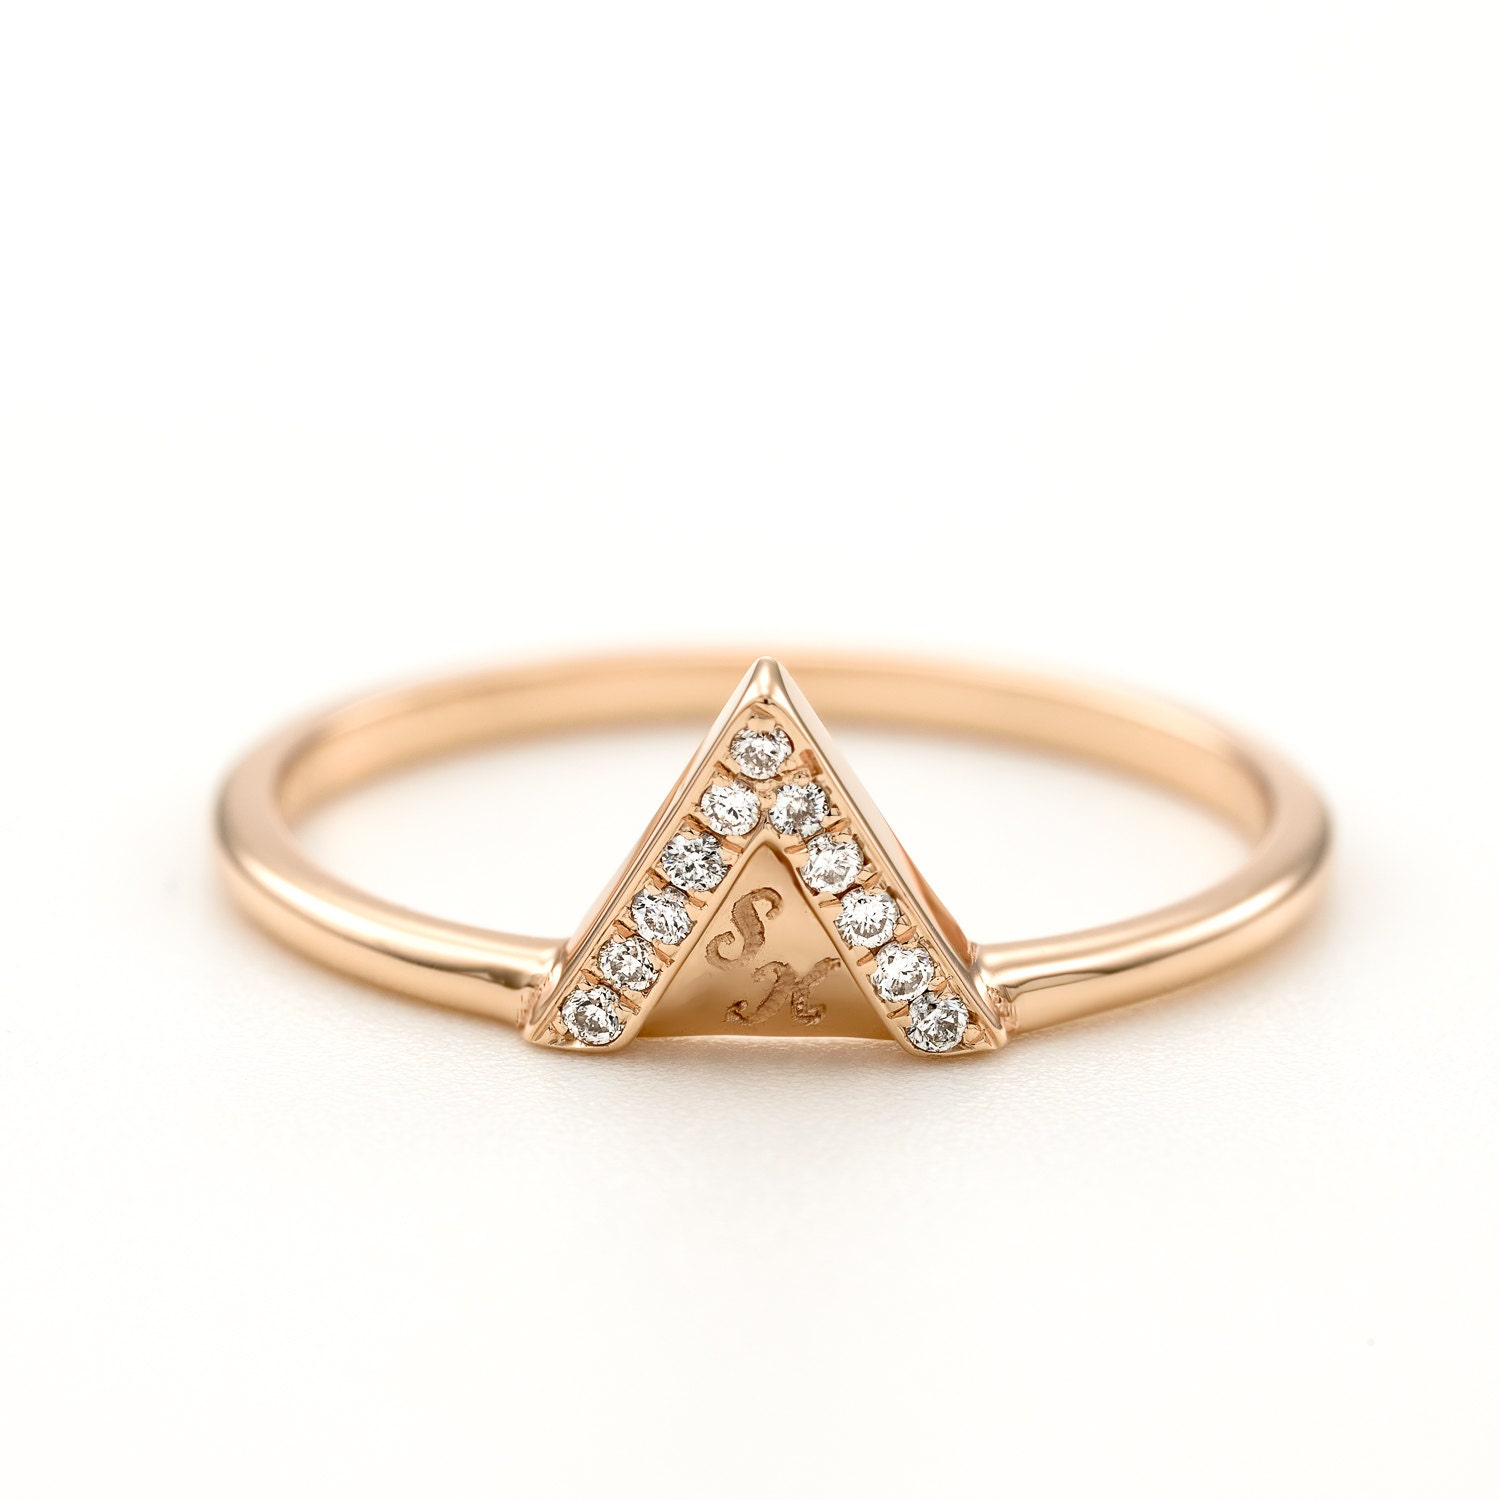 diamond wedding ring trillion ring triangle wedding ring simple wedding ring - Simple Wedding Ring